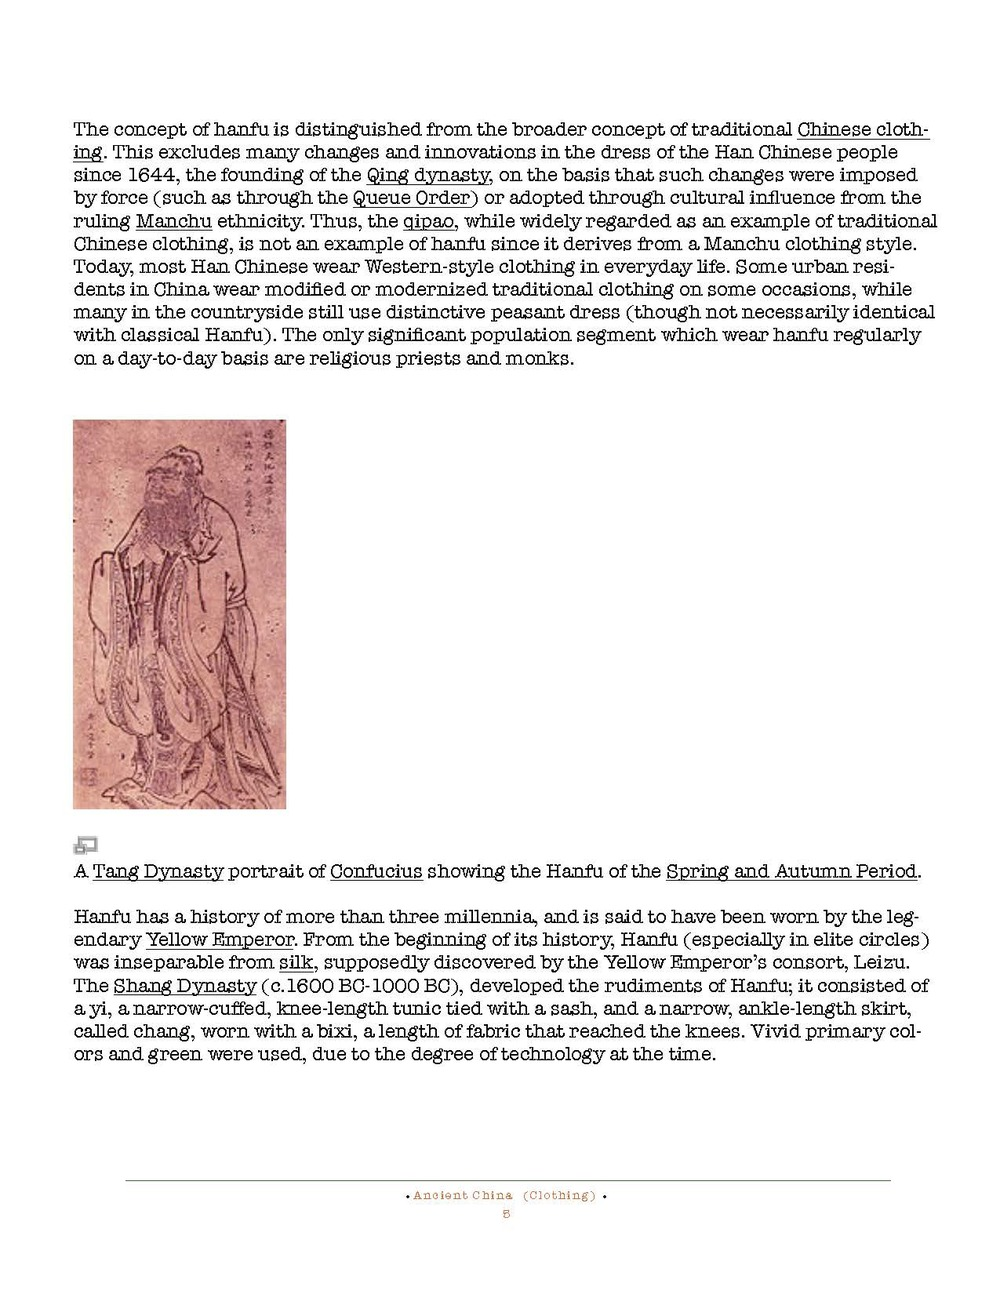 HOCE- Ancient China Notes (clothing)_Page_05.jpg